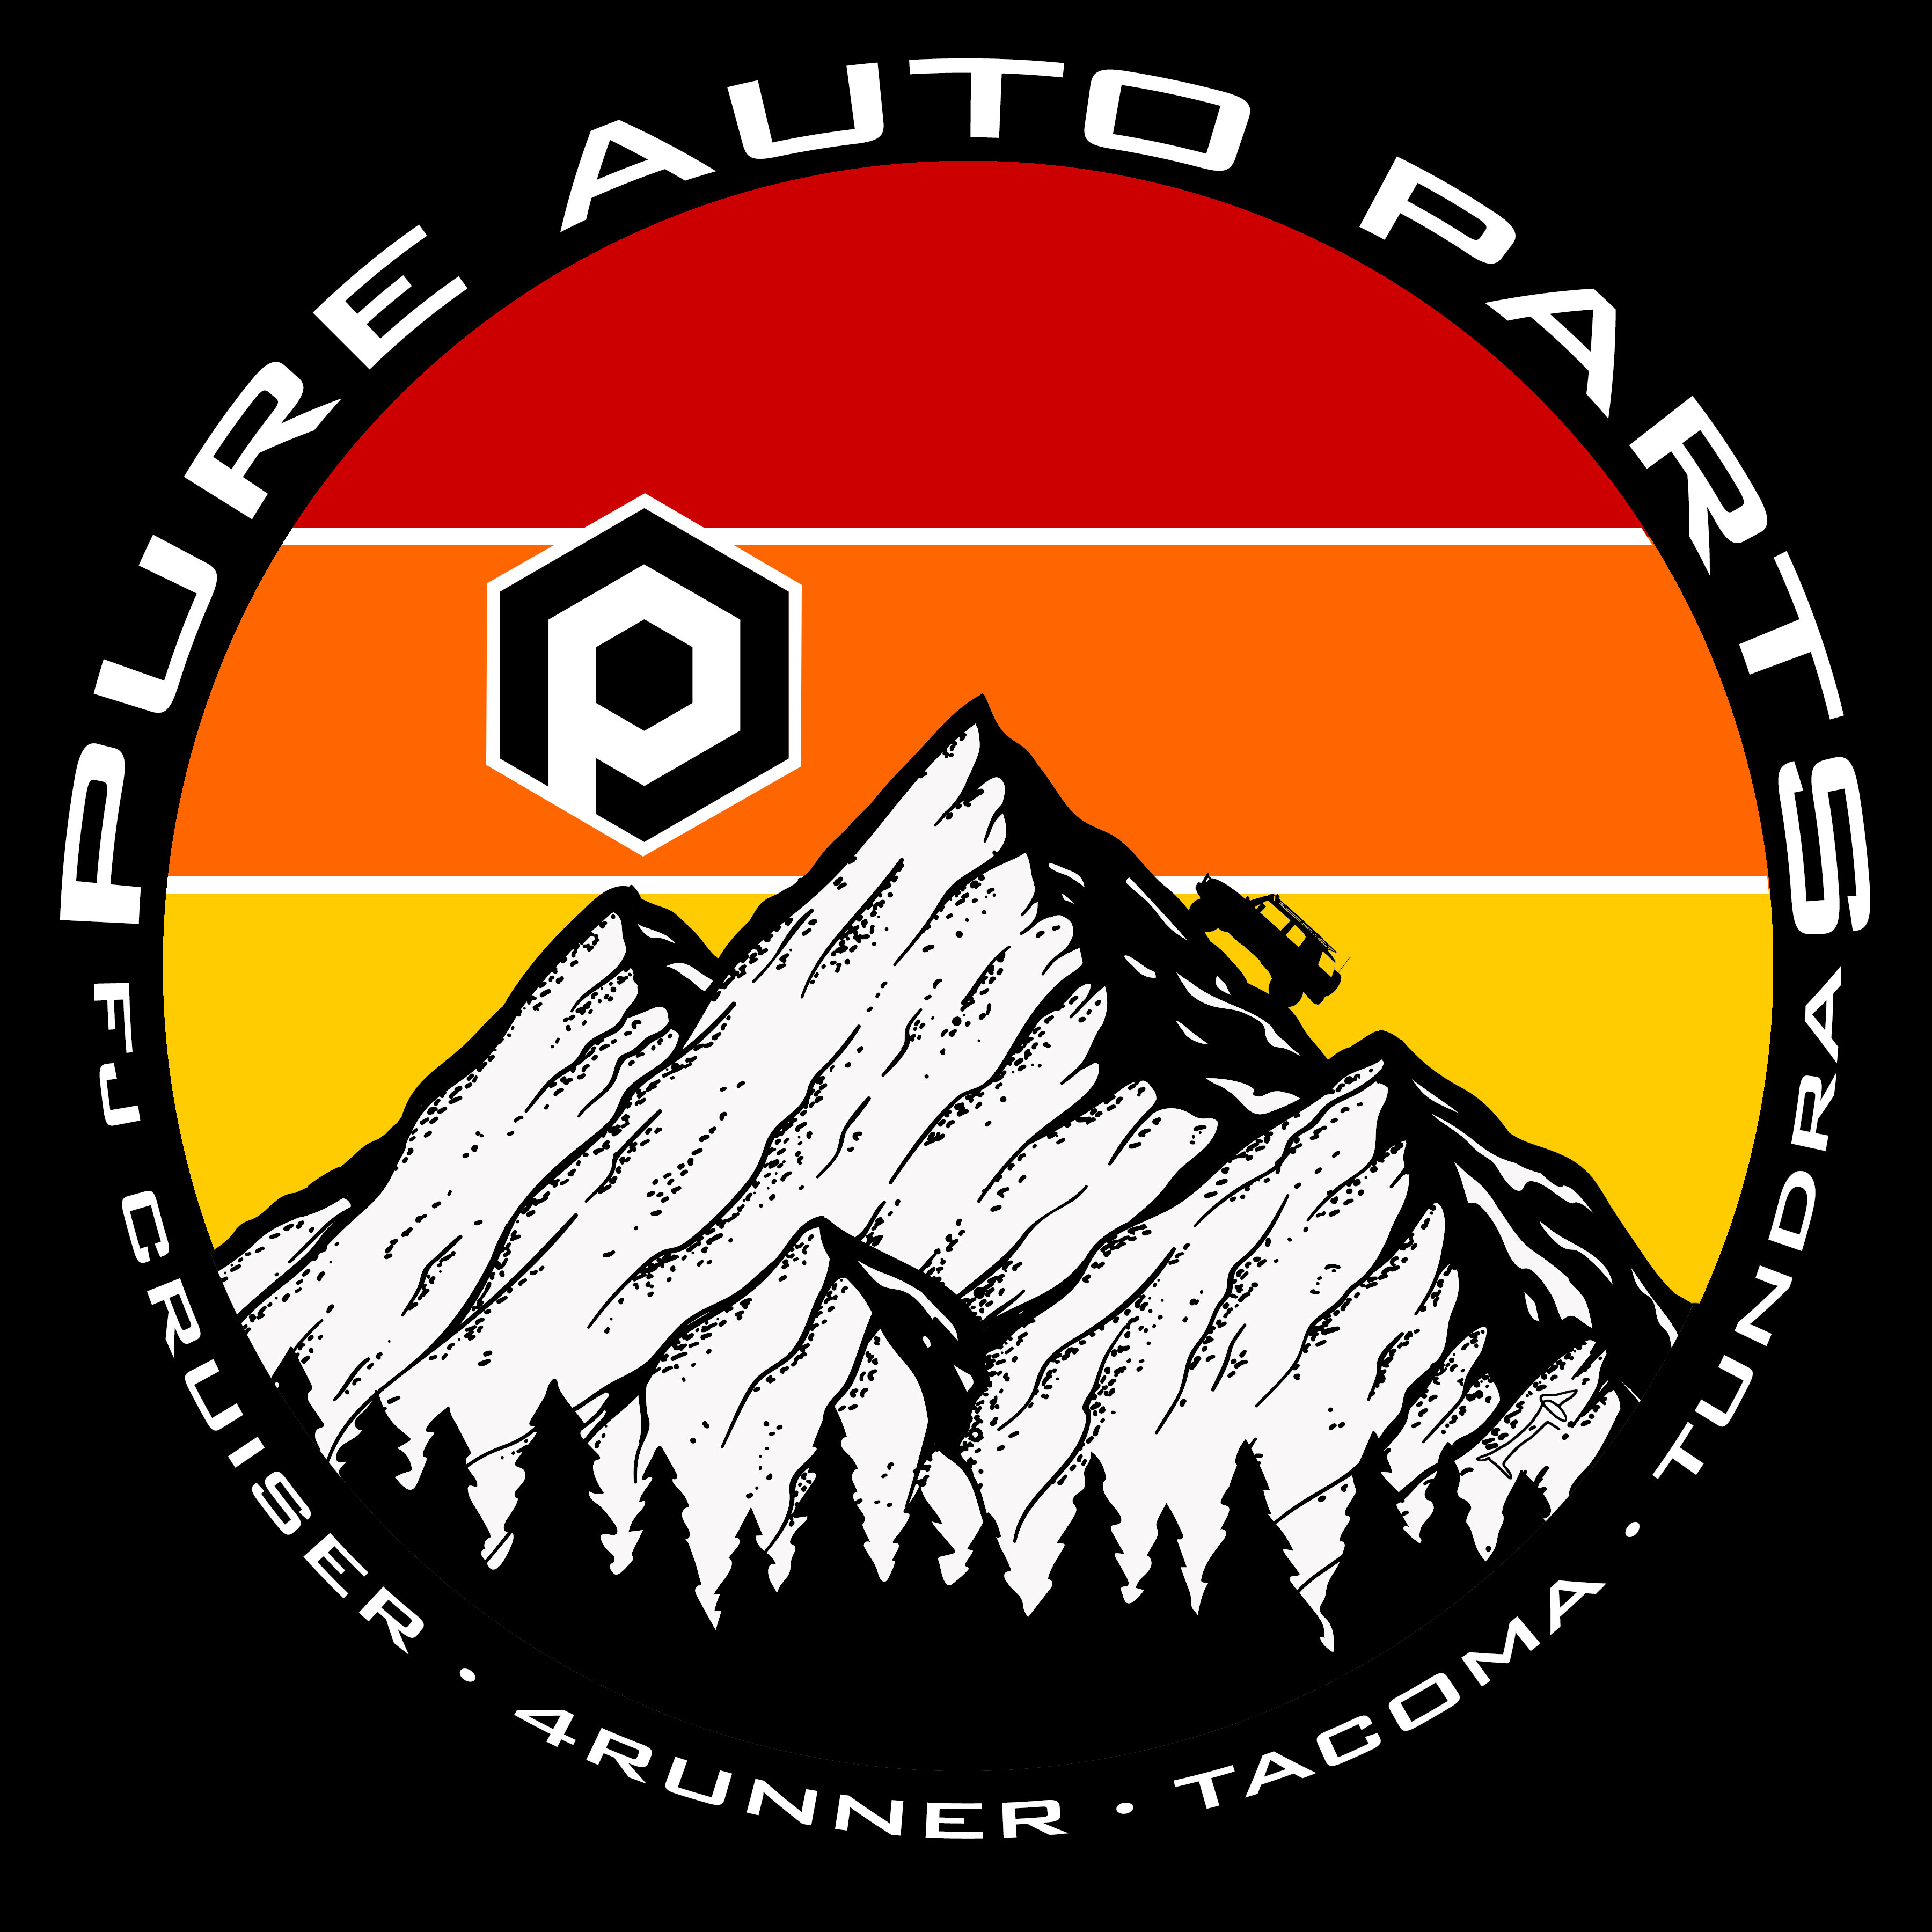 Pure Auto Parts - OverLanding - New T-Shirt for 2020 - FREE SHIPPING